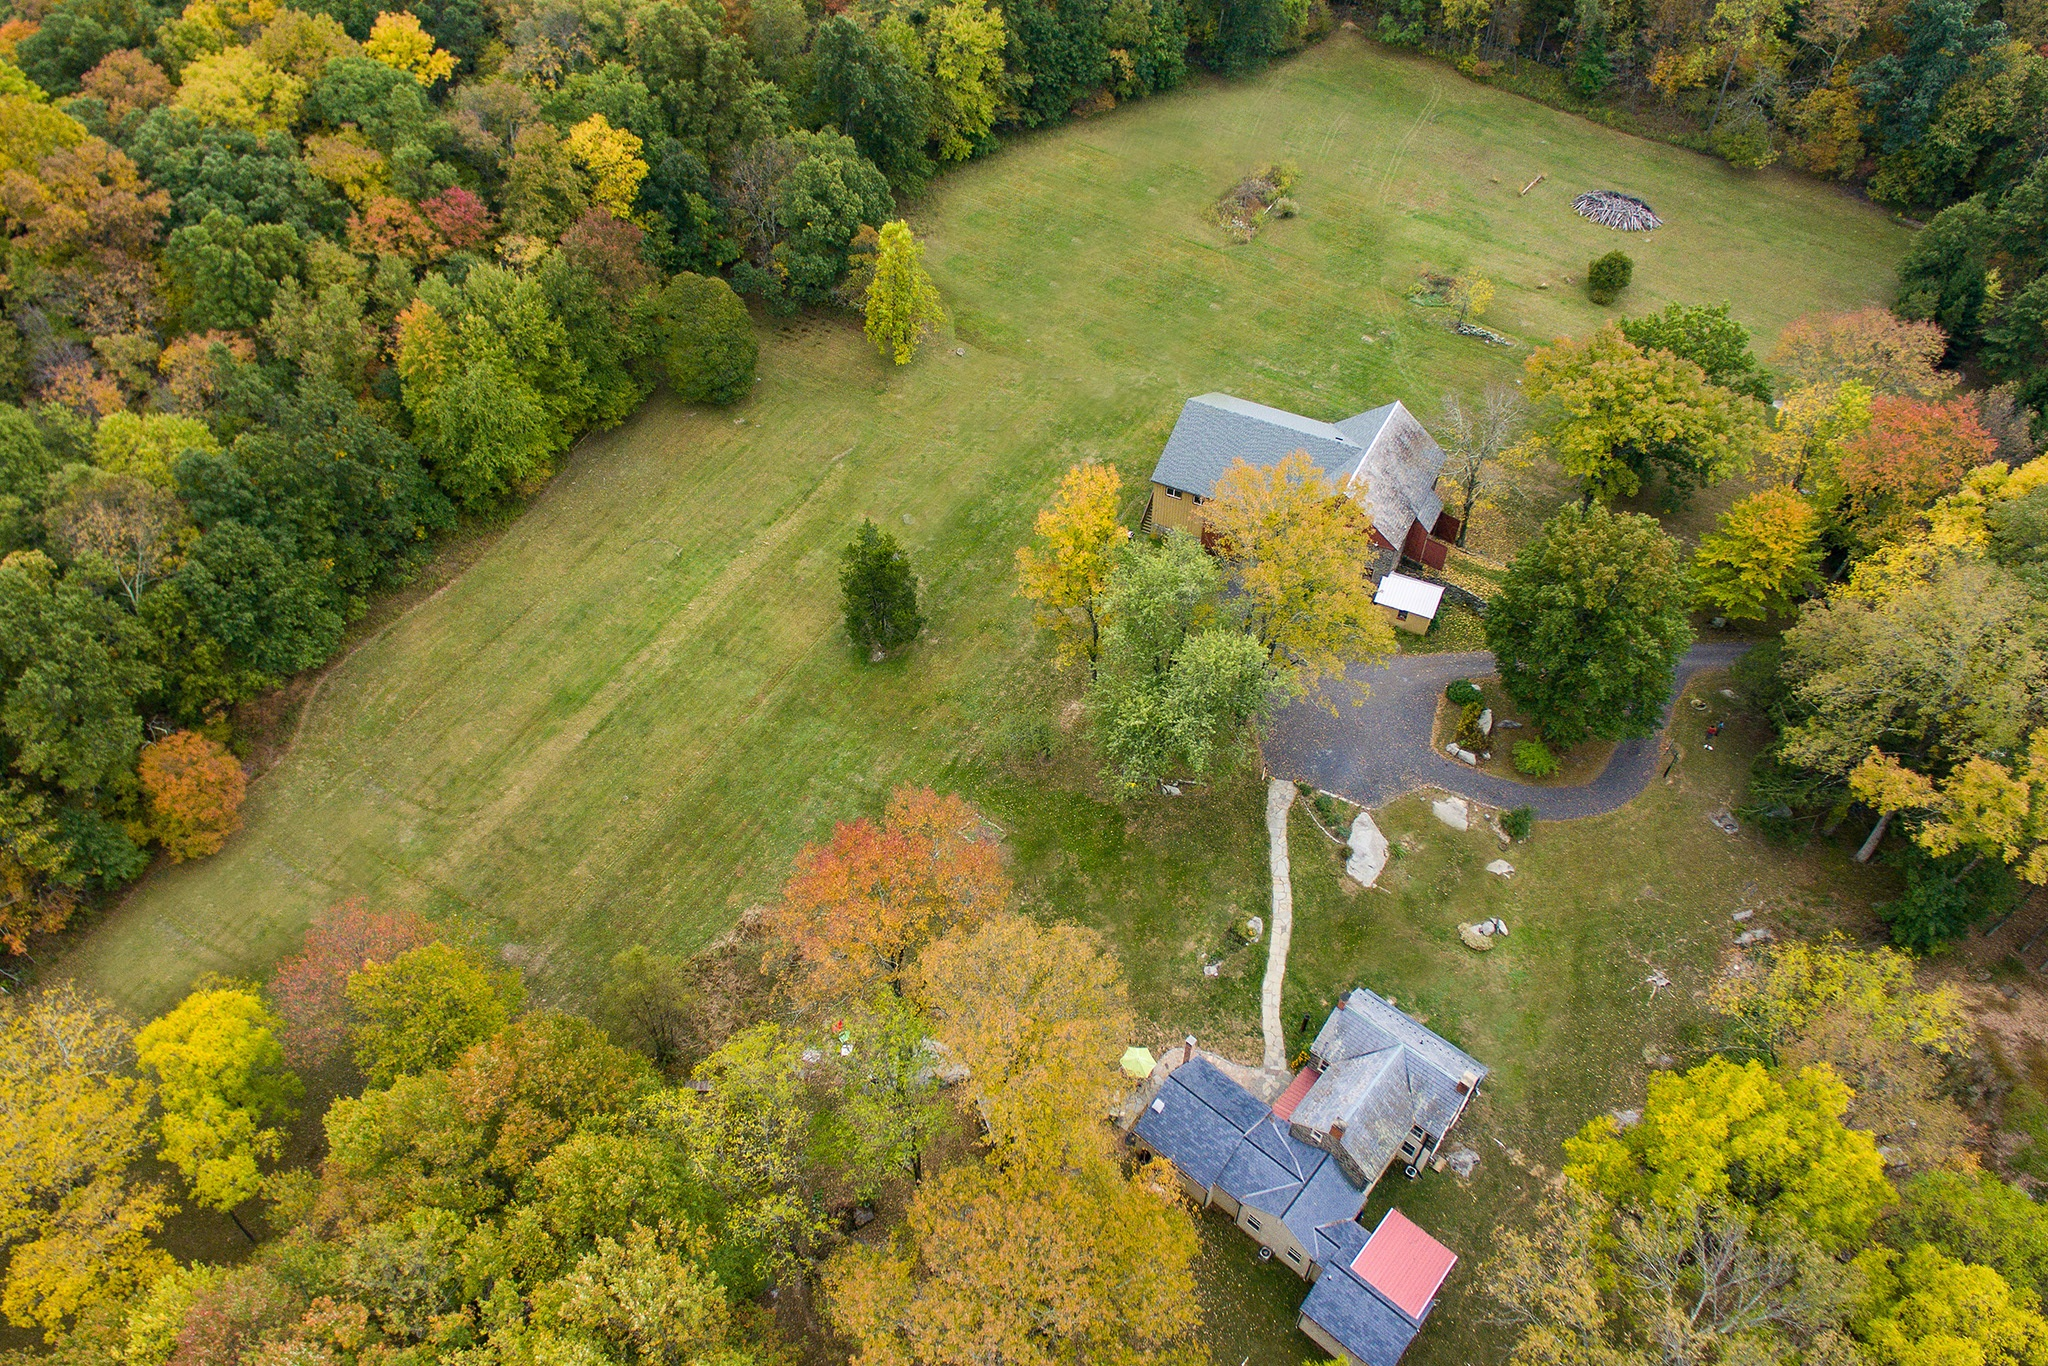 Horse Property Bucks County | #HorsePropertyBucksCounty | Bucks County Country Home | #BucksCountyCountryHome